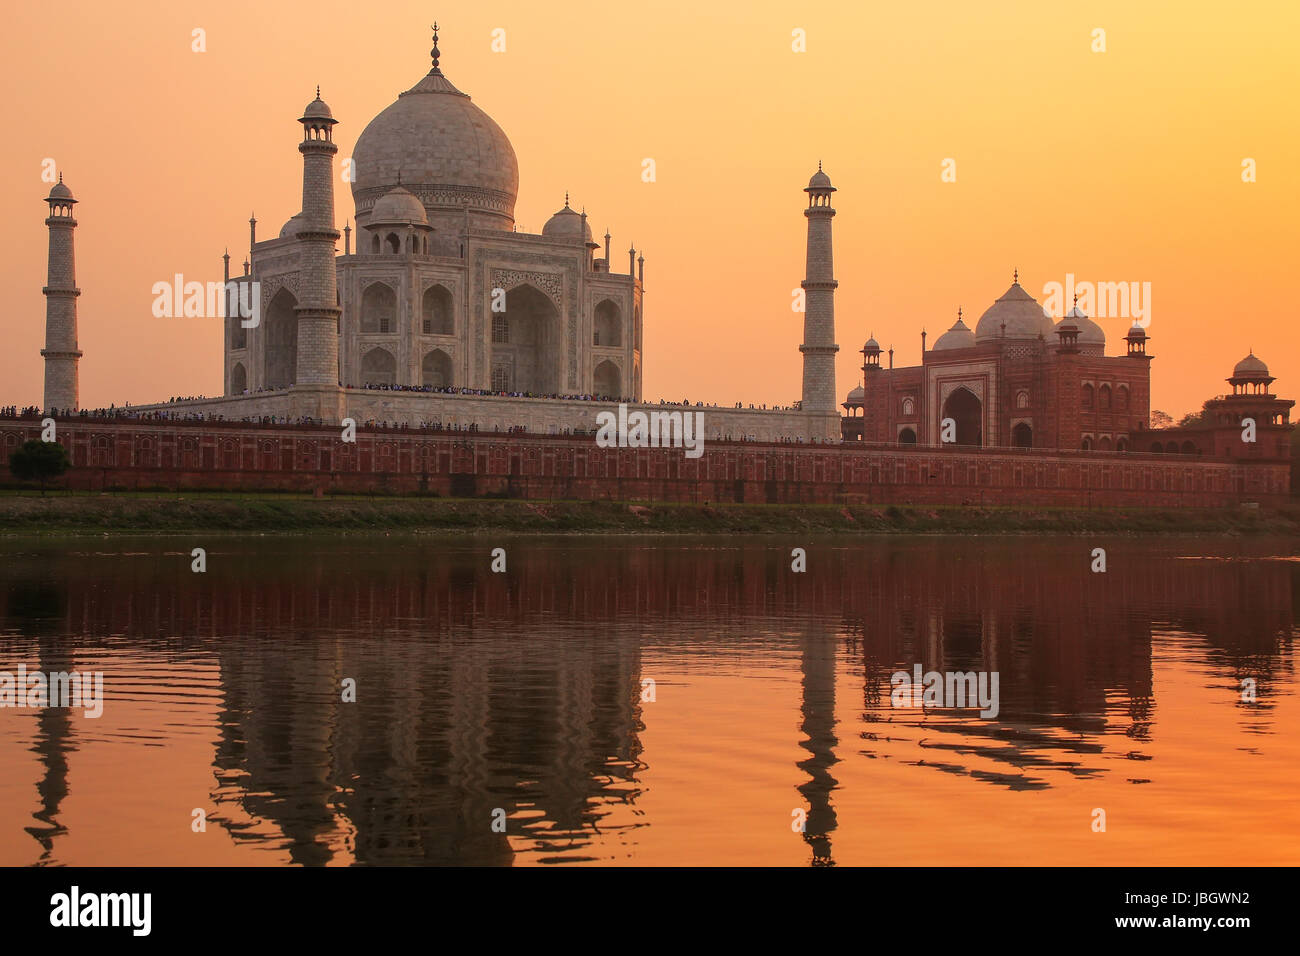 Taj Mahal reflected in Yamuna river at sunset in Agra, India. It was commissioned in 1632 by the Mughal emperor - Stock Image